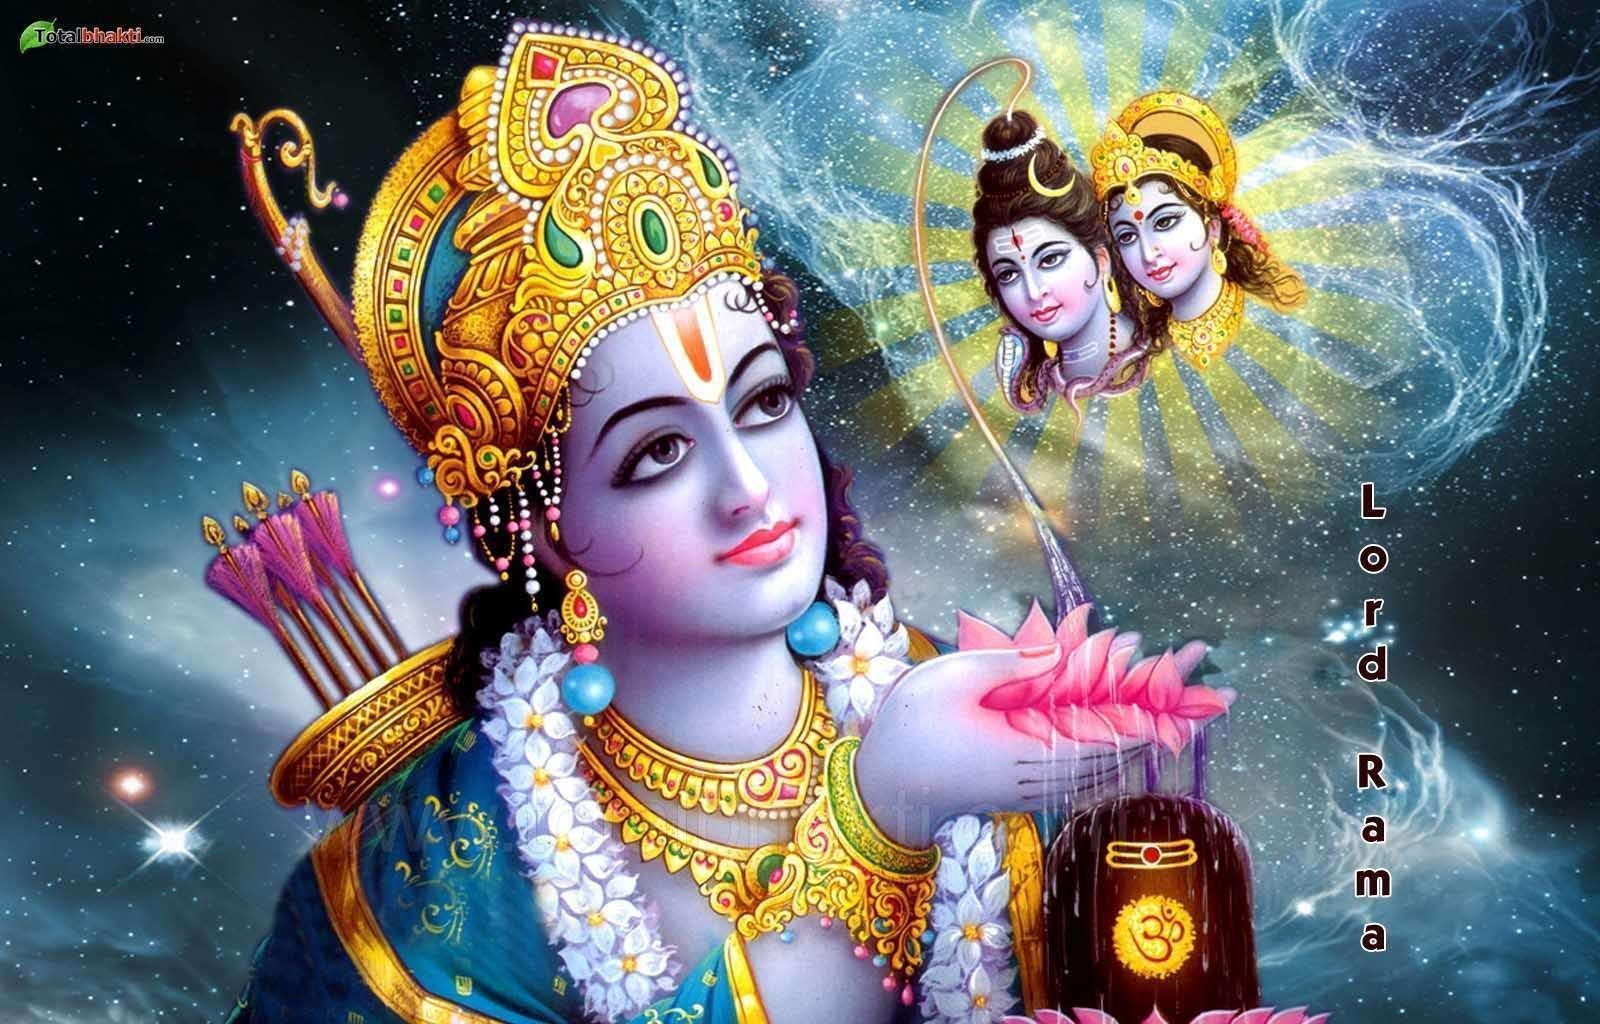 Hindu picture Lord HD God Image,Wallpapers & Backgrounds Lord